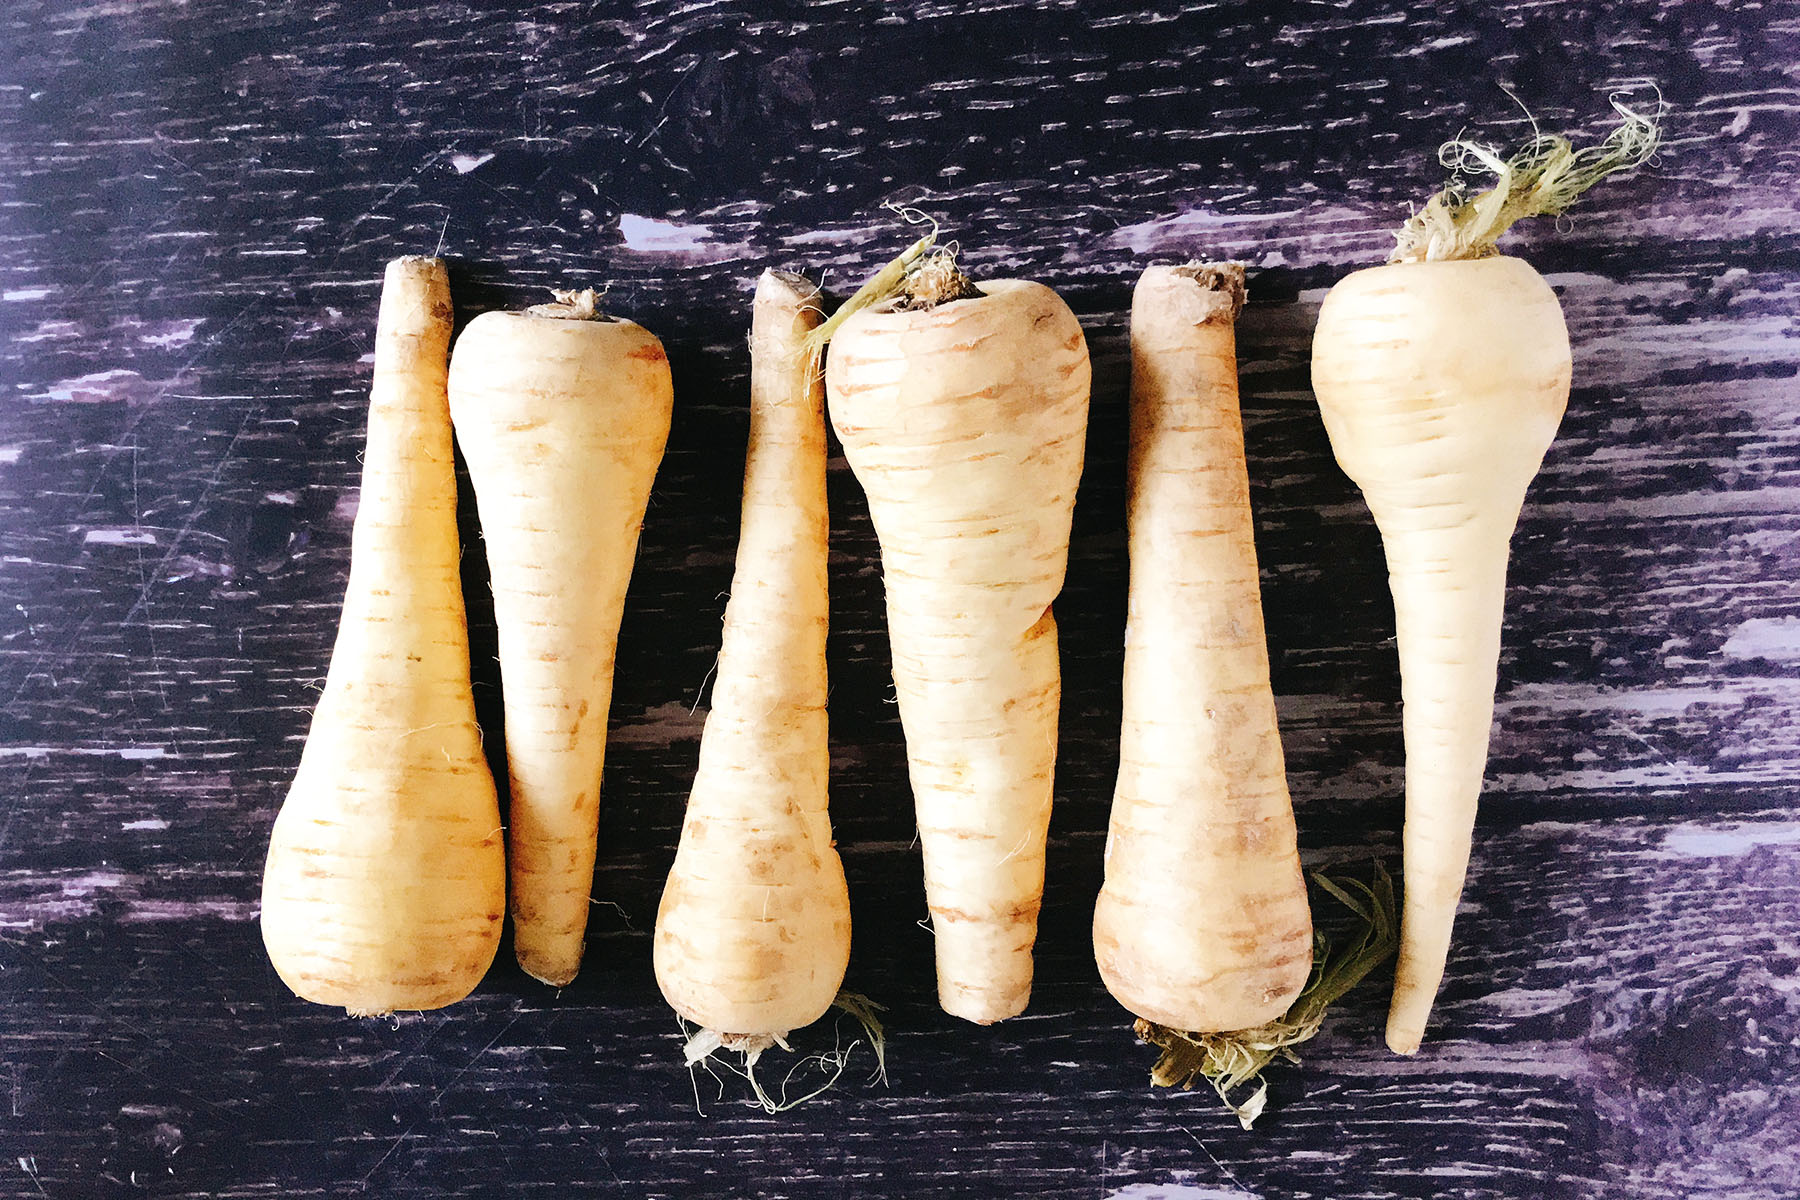 six parsnips on wooden background